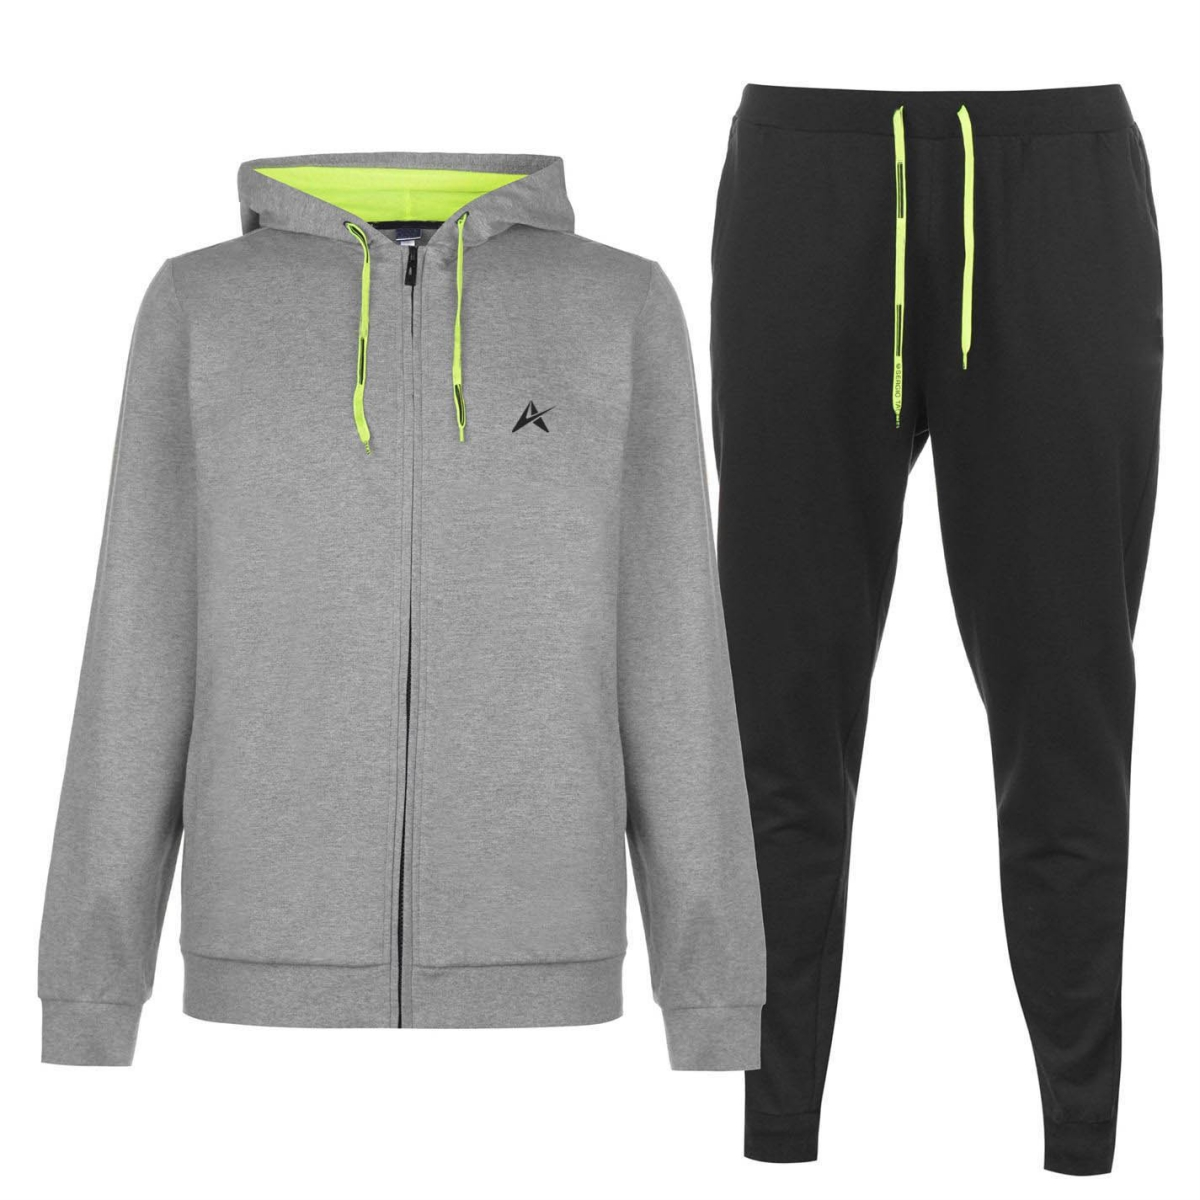 Men's Casual JOGGING SUIT Long Sleeve Running Jogging Athletic Sports Set  A1-504